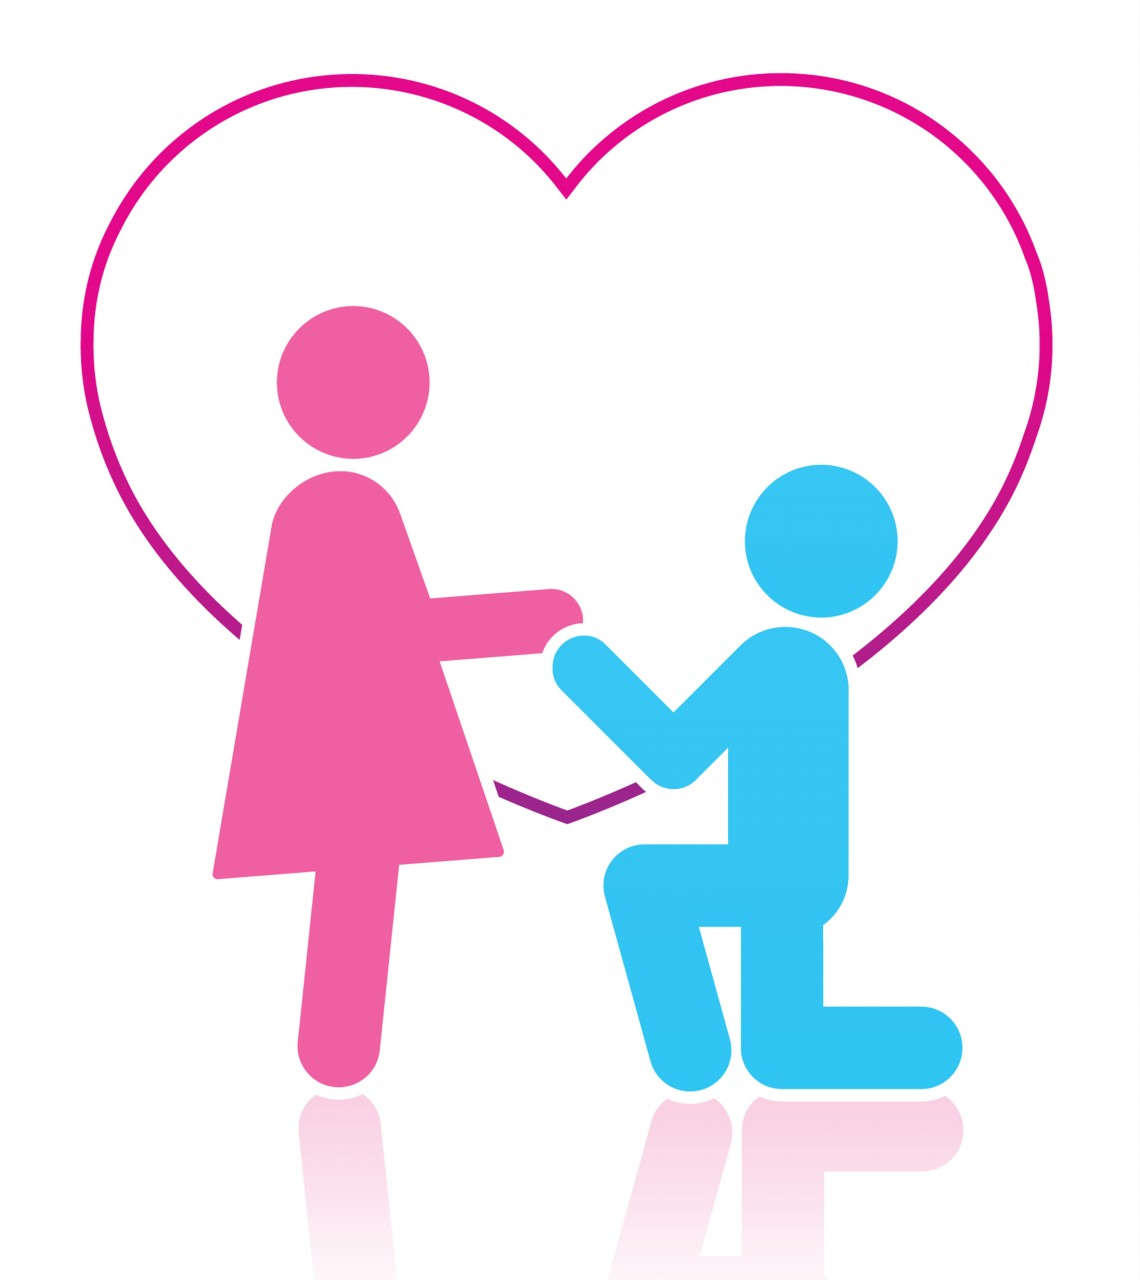 22 people in love clipart free cliparts that you can download to you ...